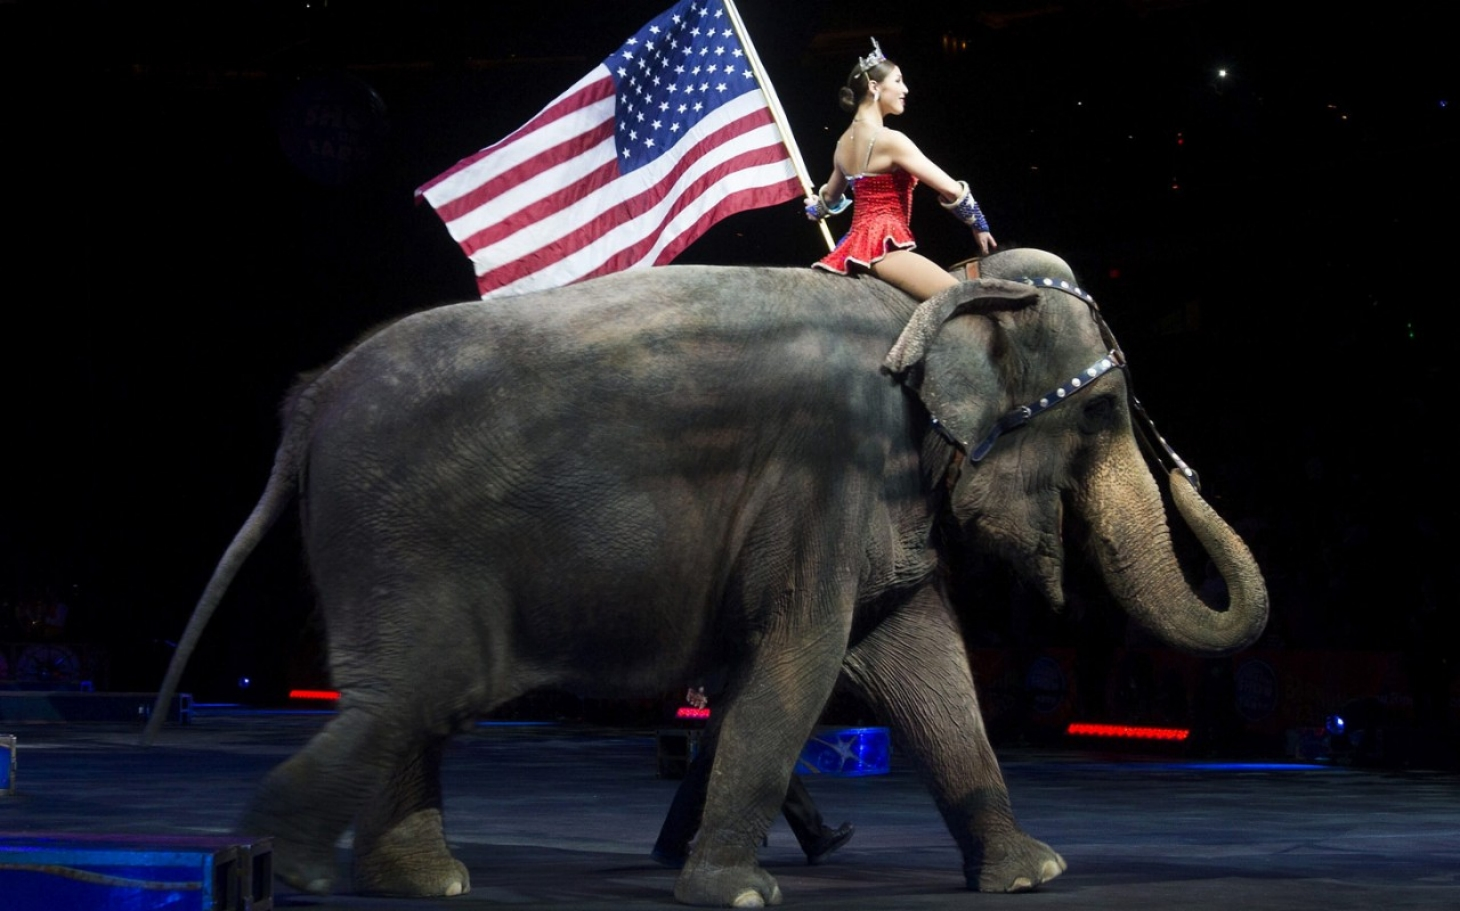 nonhuman rights groups  elephants are people too